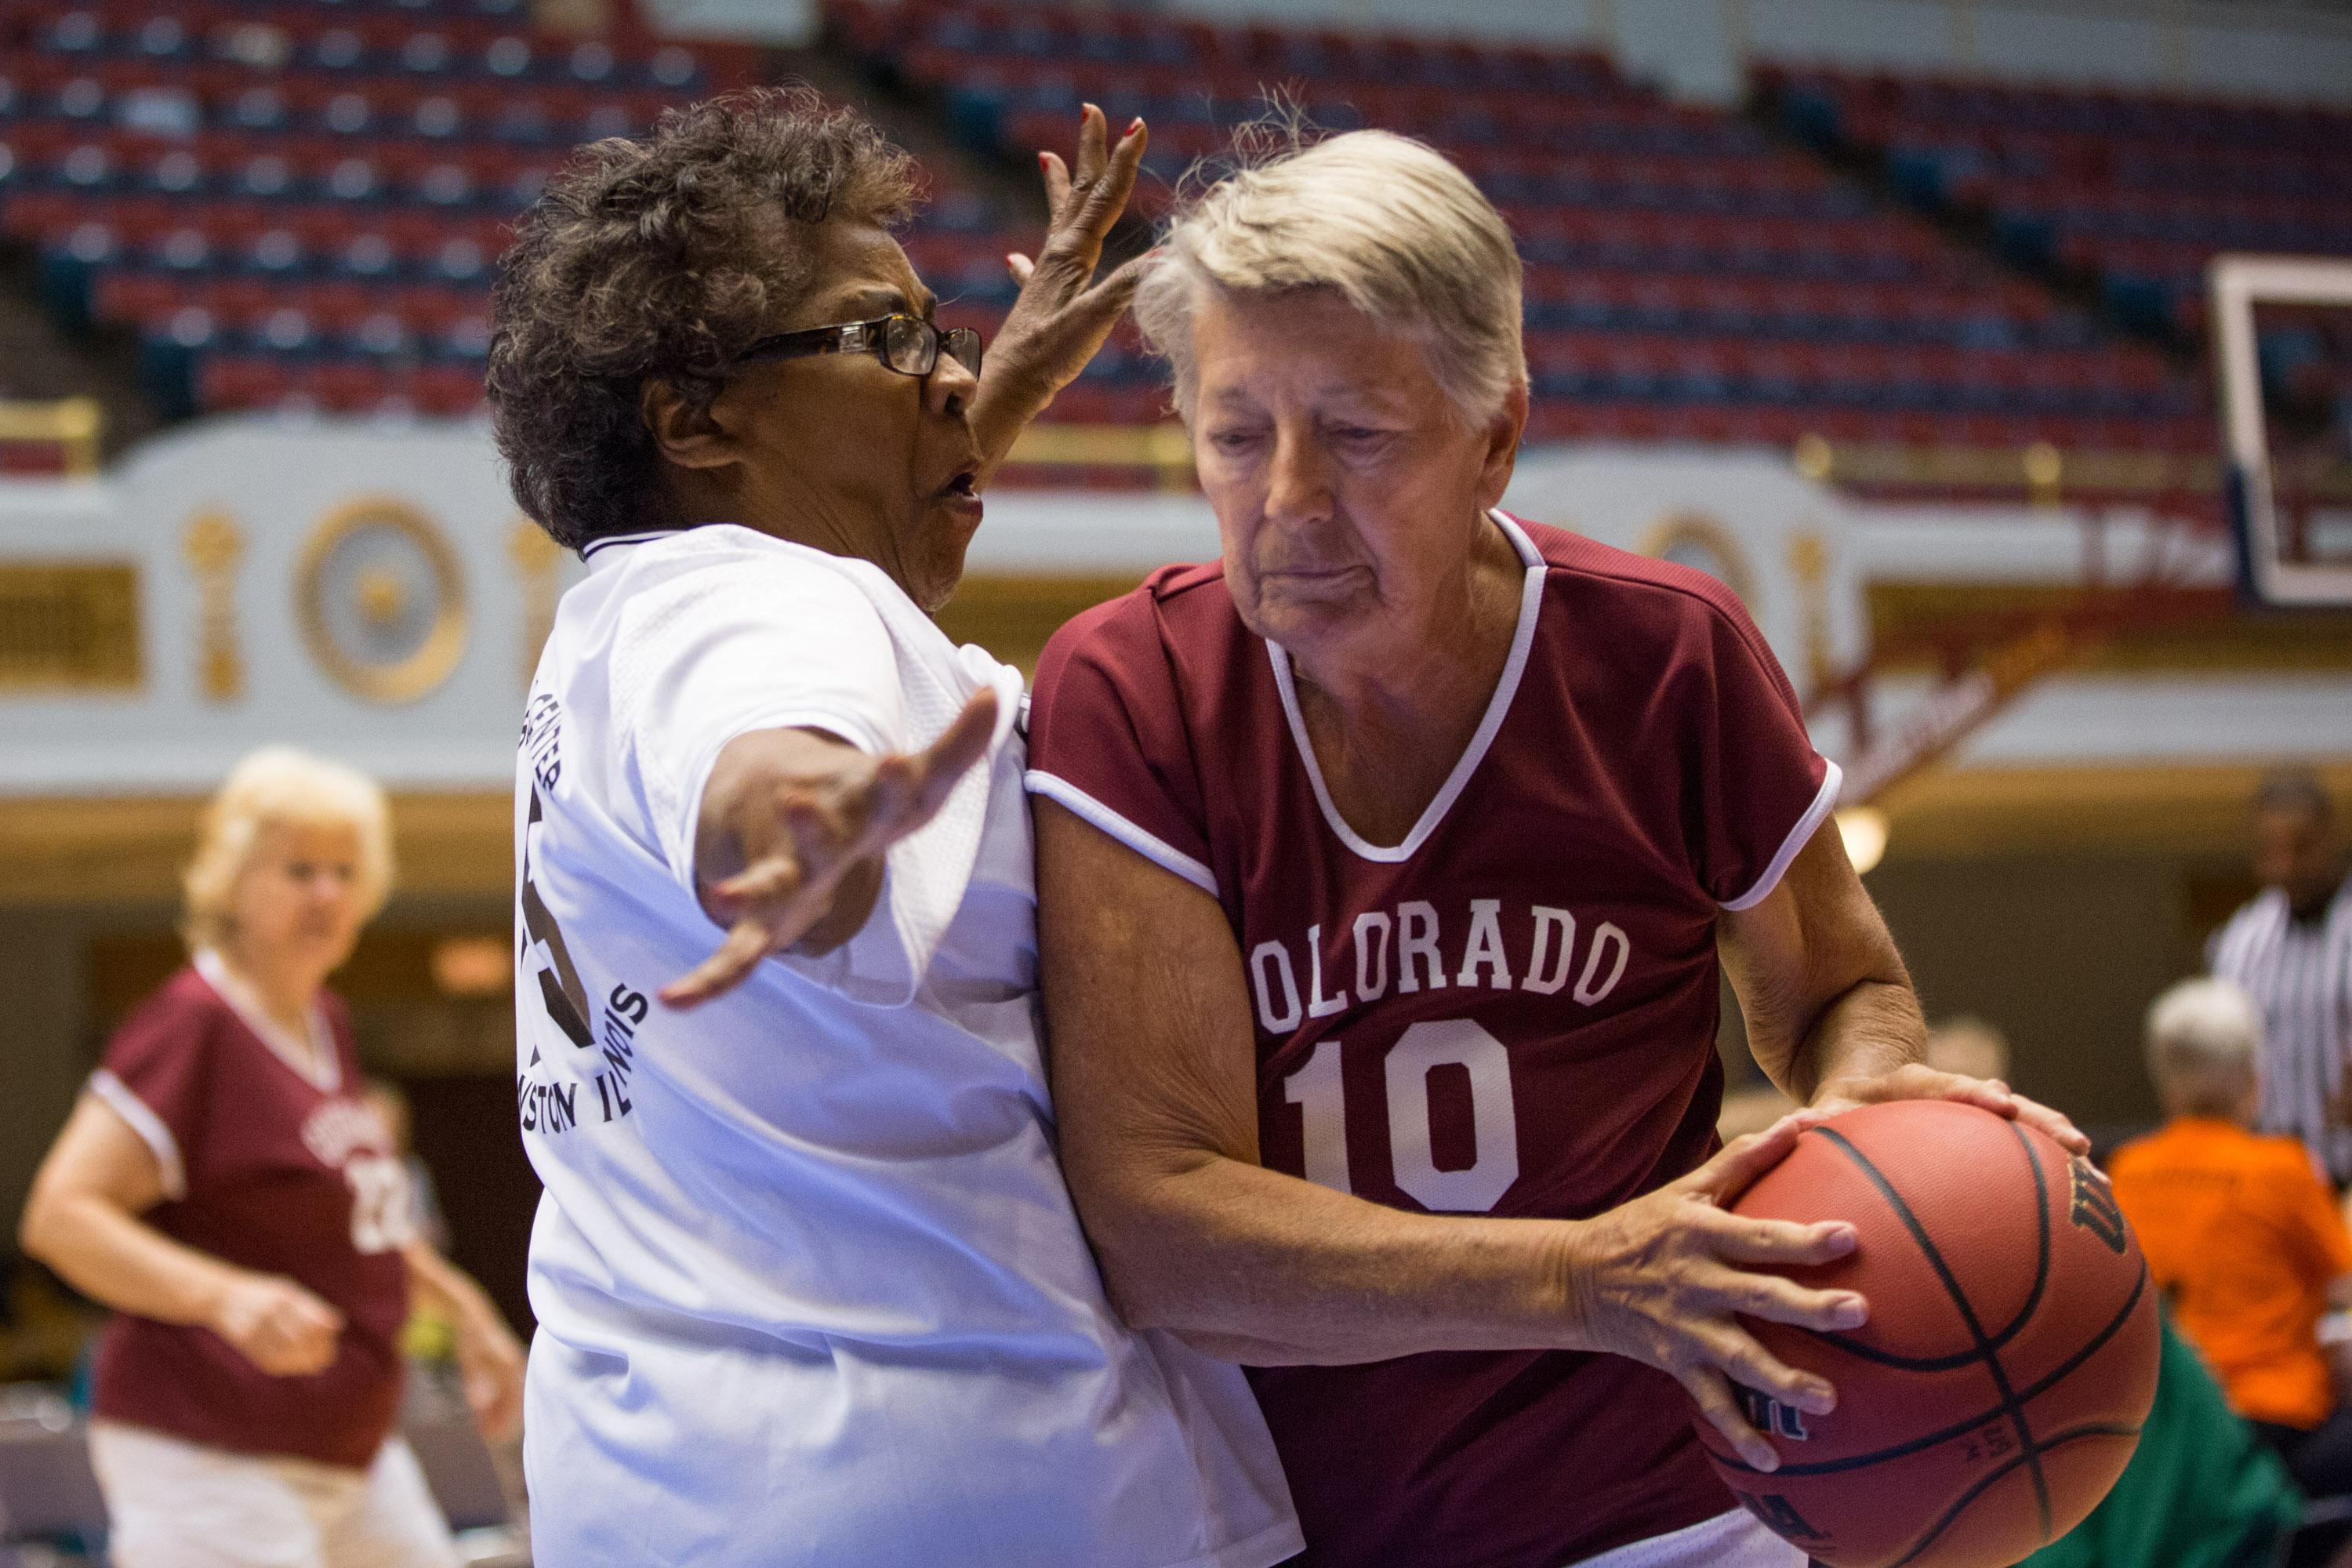 The game's action is fairly slow, but despite their age, the women play a very physical game. The 3-on-3 games are played on a half-court, where each player plays offense and defense.